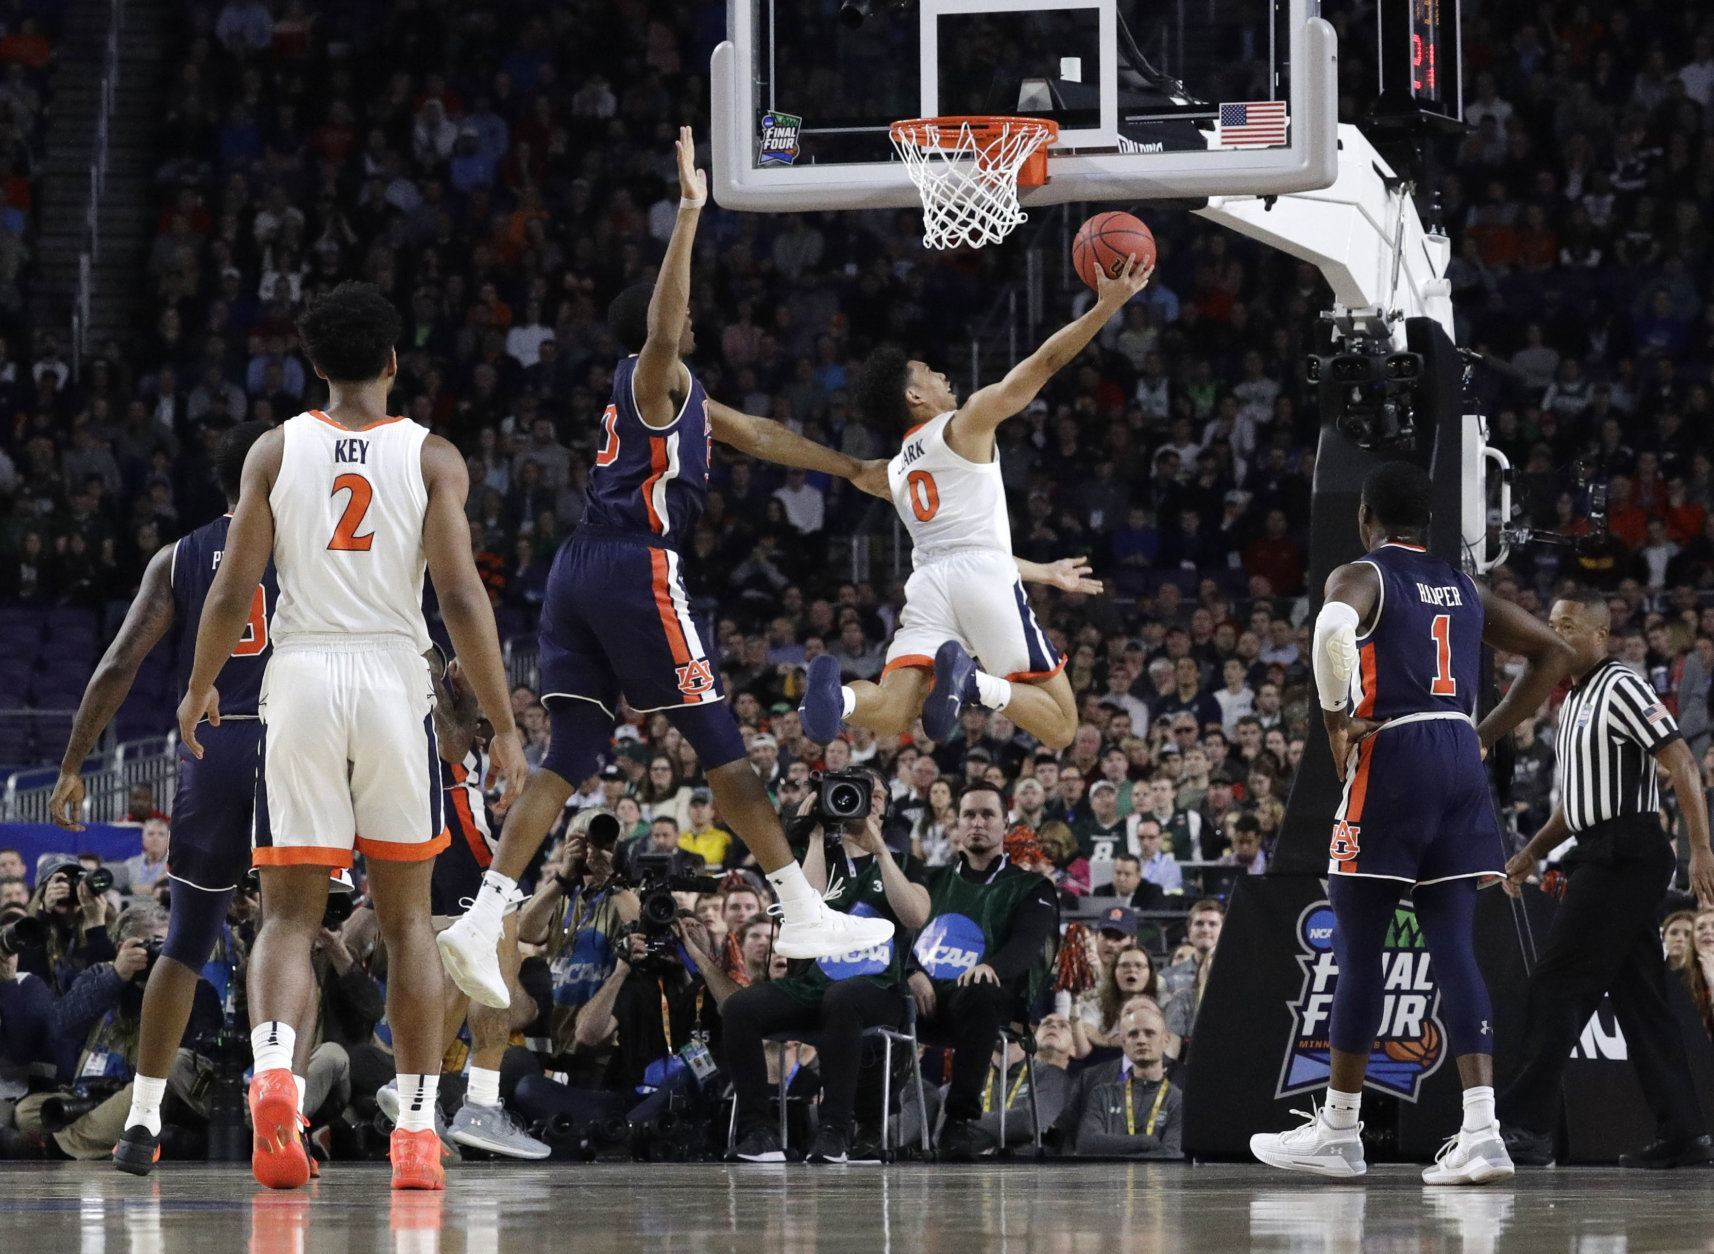 Virginia guard Kihei Clark (0) drives to the basket past Auburn center Austin Wiley during the first half in the semifinals of the Final Four NCAA college basketball tournament, Saturday, April 6, 2019, in Minneapolis. (AP Photo/David J. Phillip)